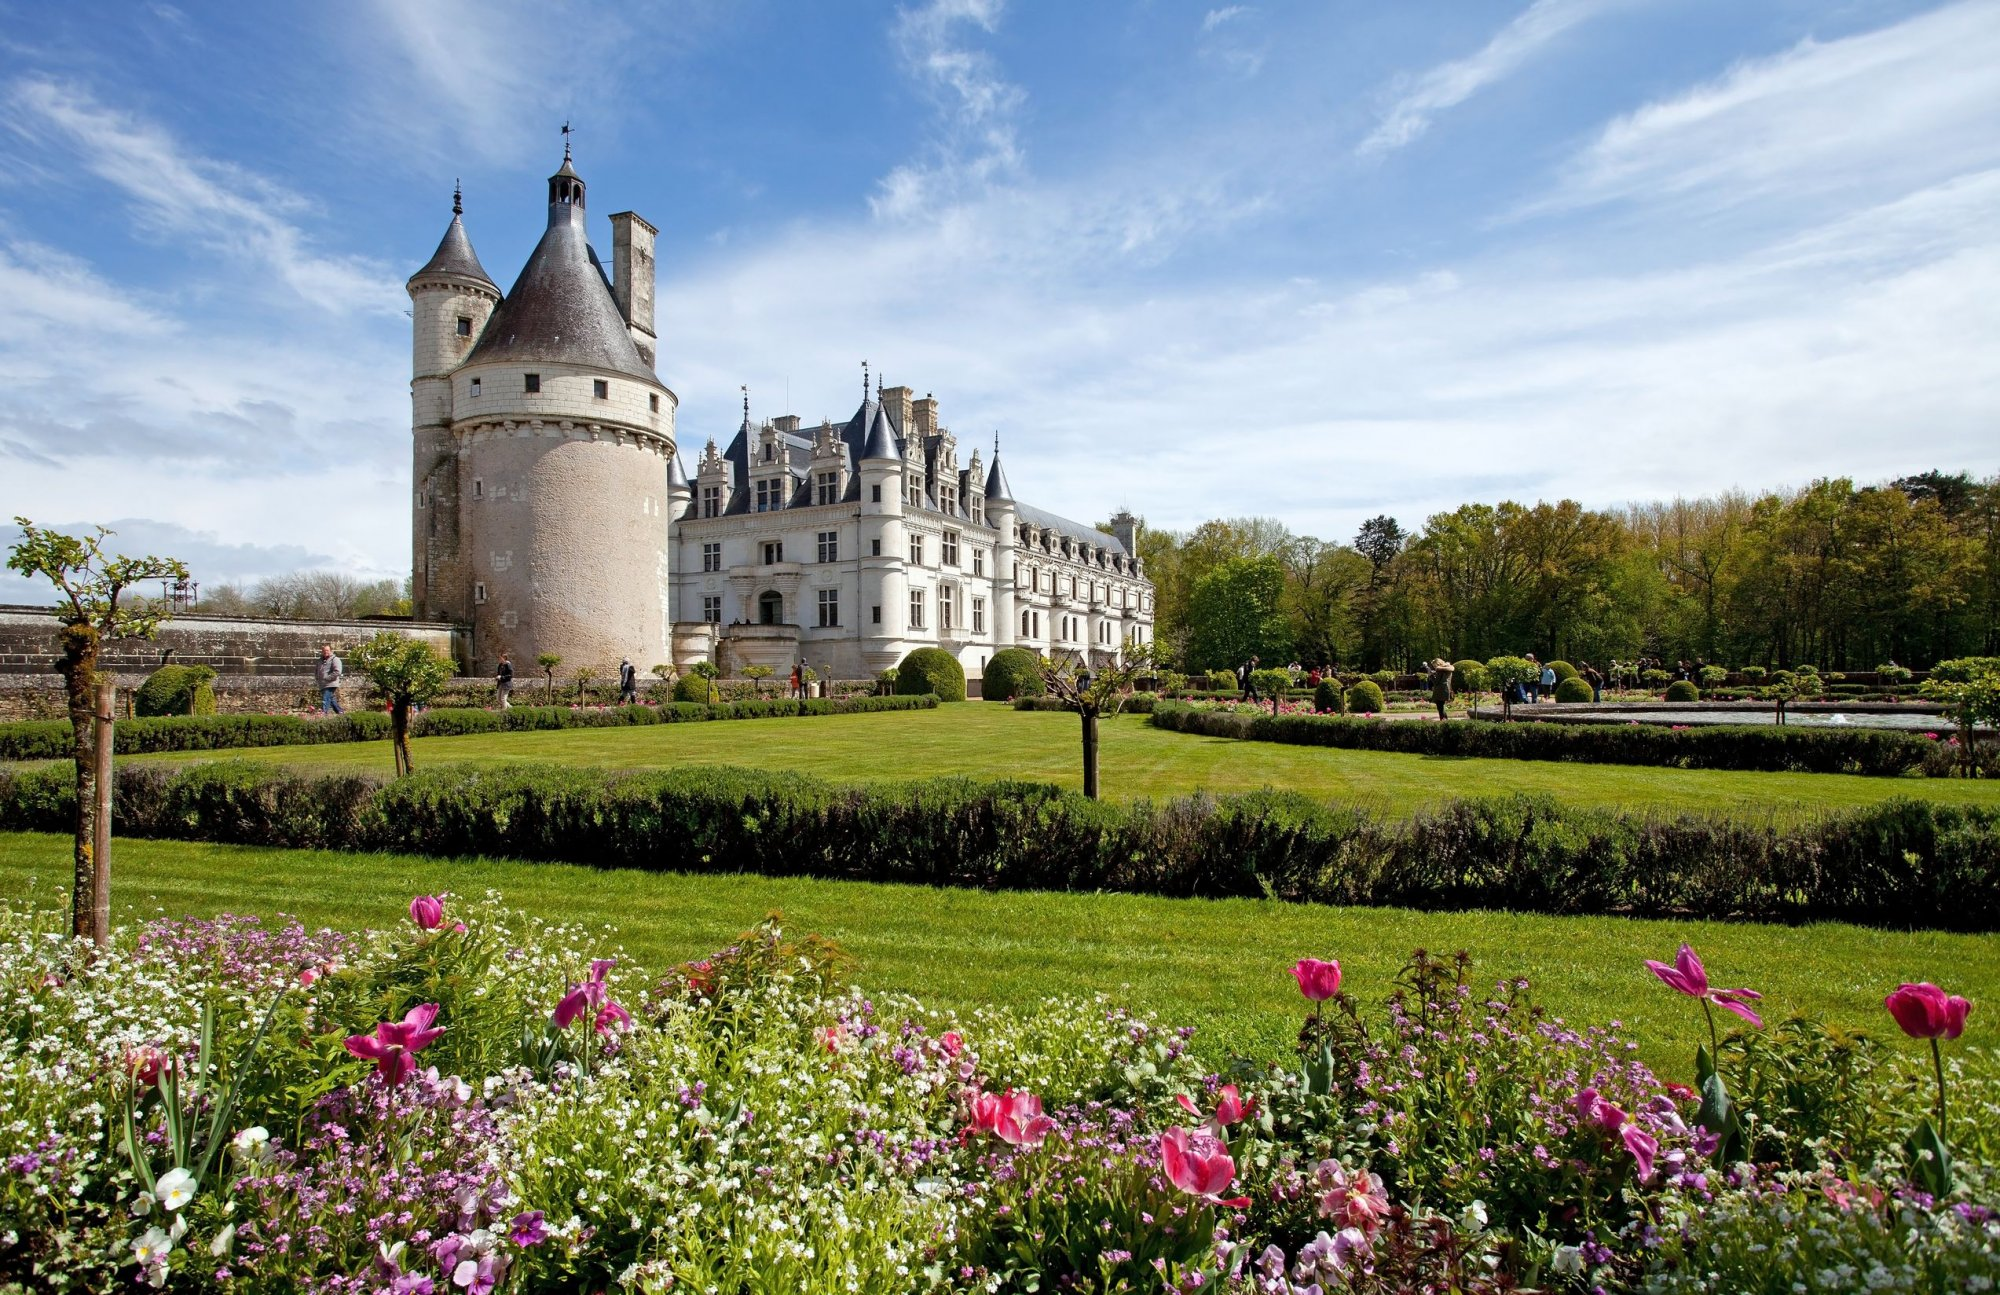 Chaumont_Garden_Festival_in_Loire_Valley_France1